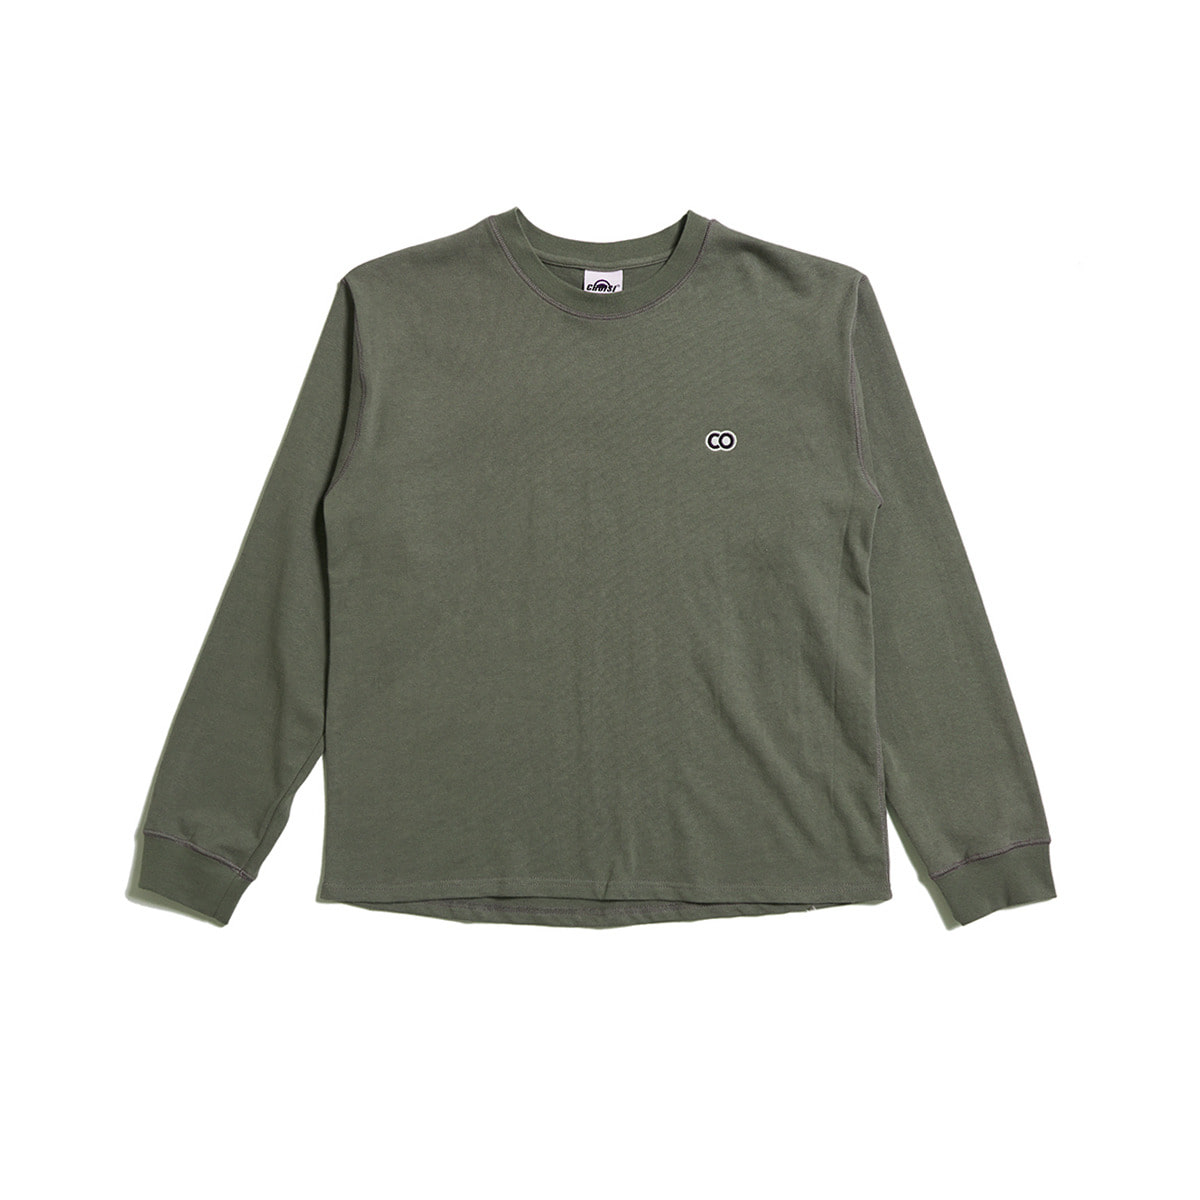 C.O Basic Long Sleeve, Charcoal